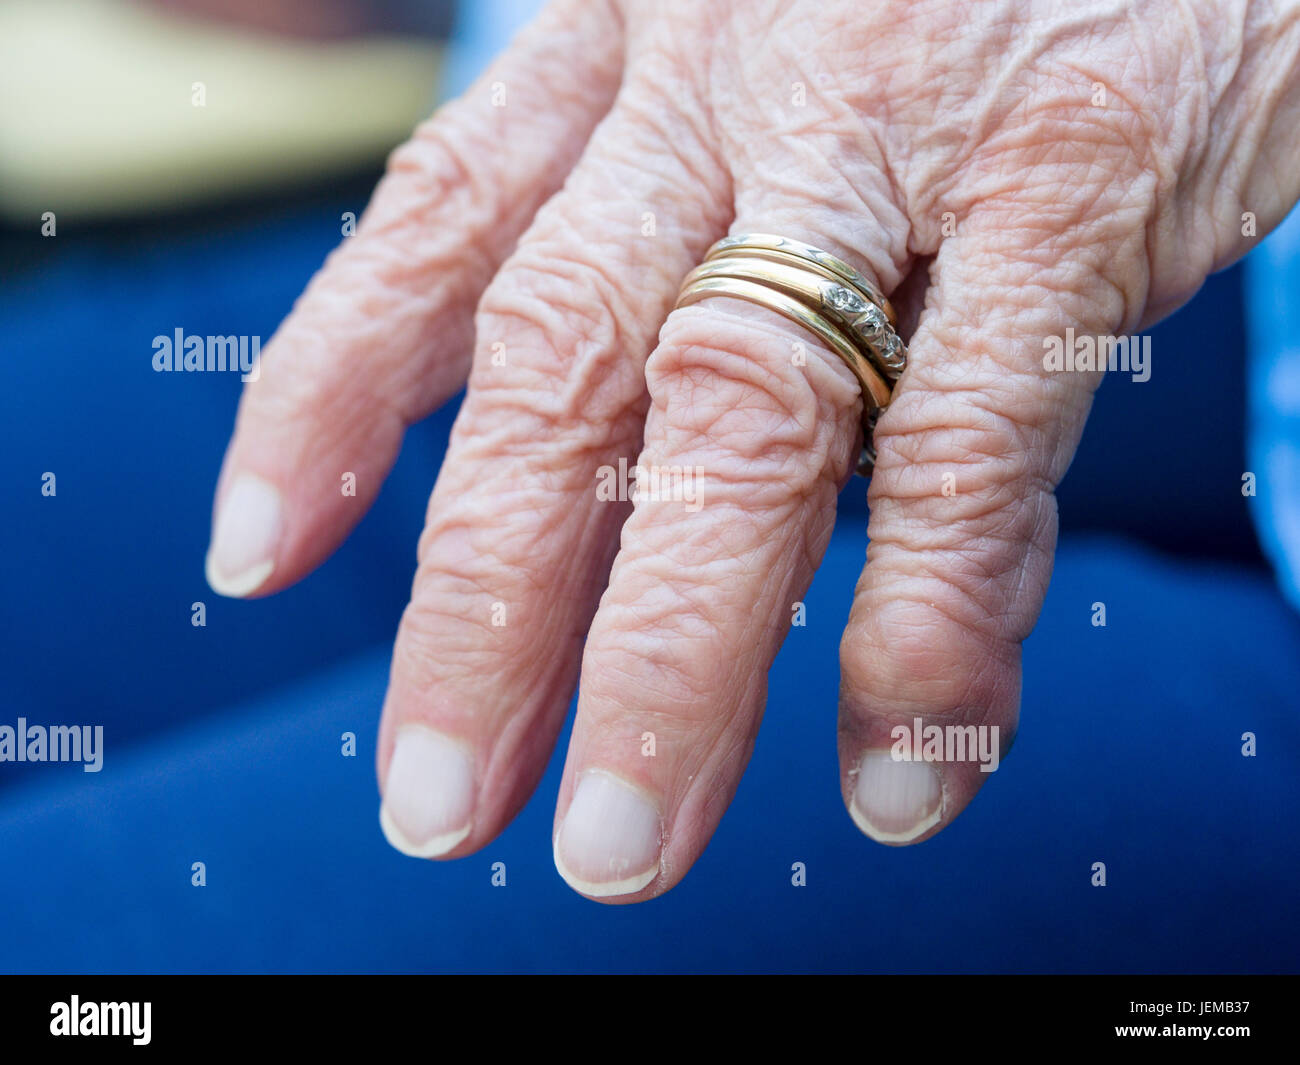 Arthritic wrinkled hand of an eldery woman: The left hand with wedding and engagement rings of an old woman. - Stock Image